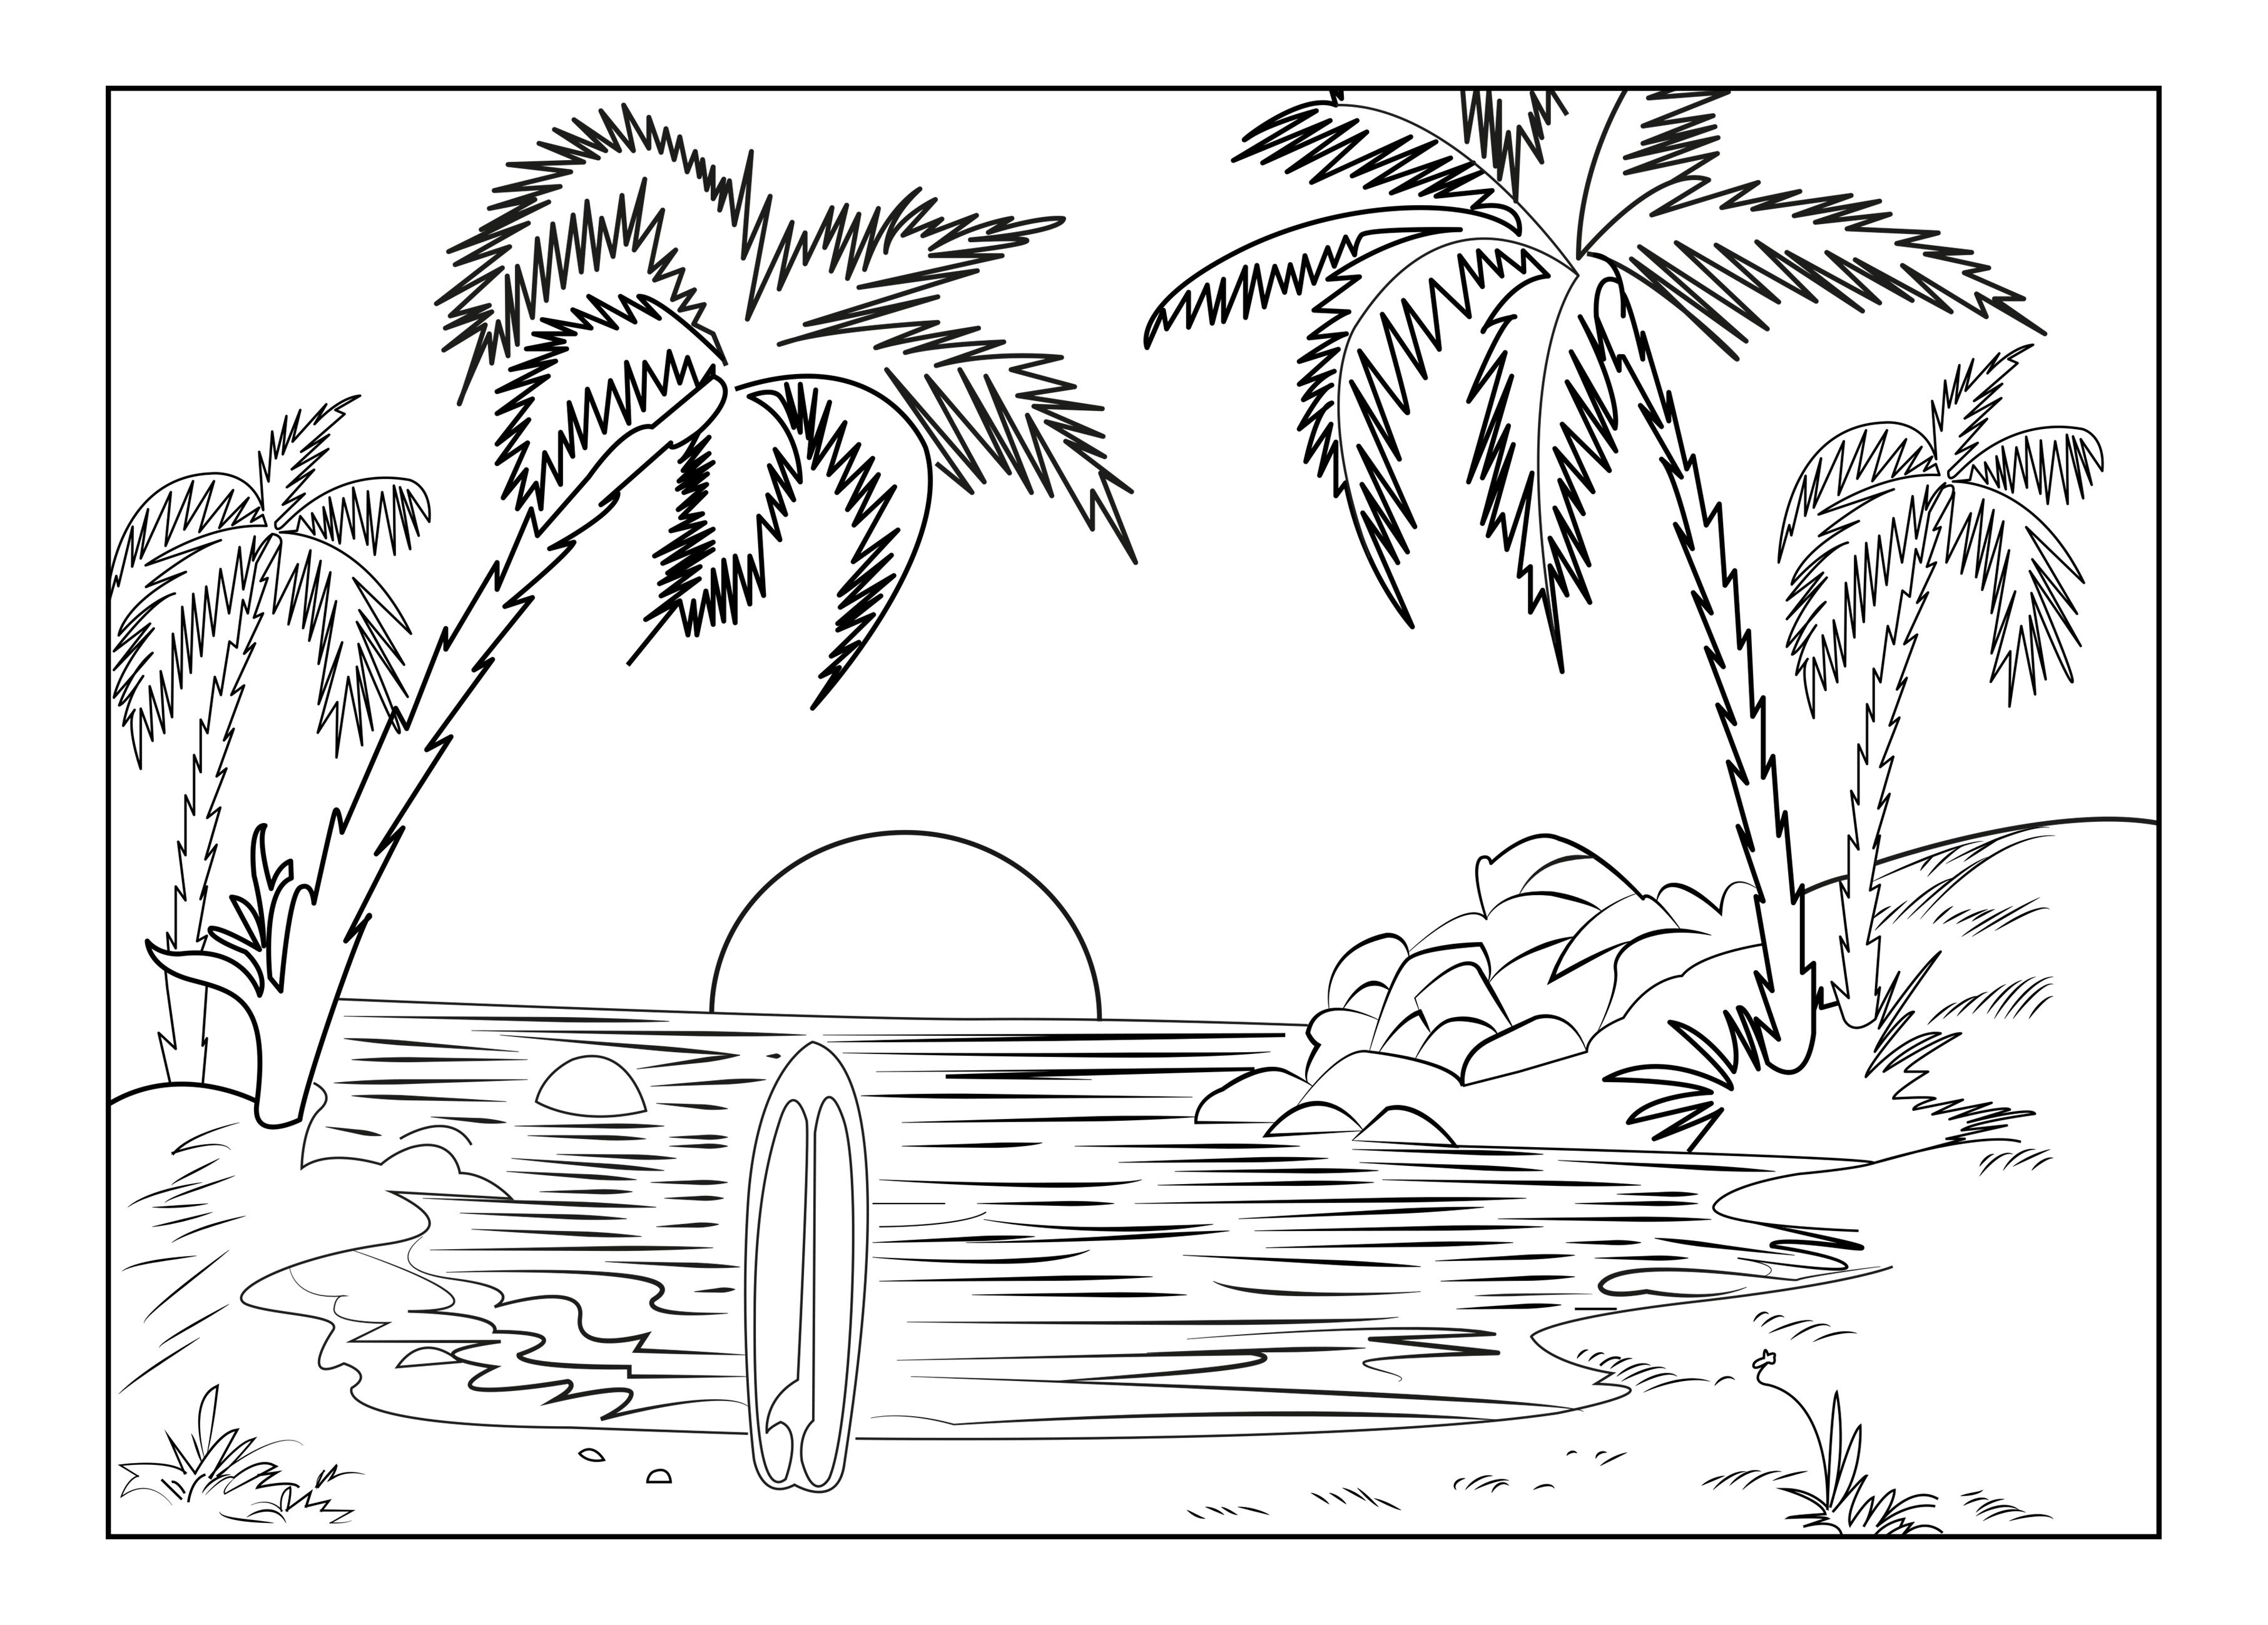 Coloring page adults landscape celine free to print